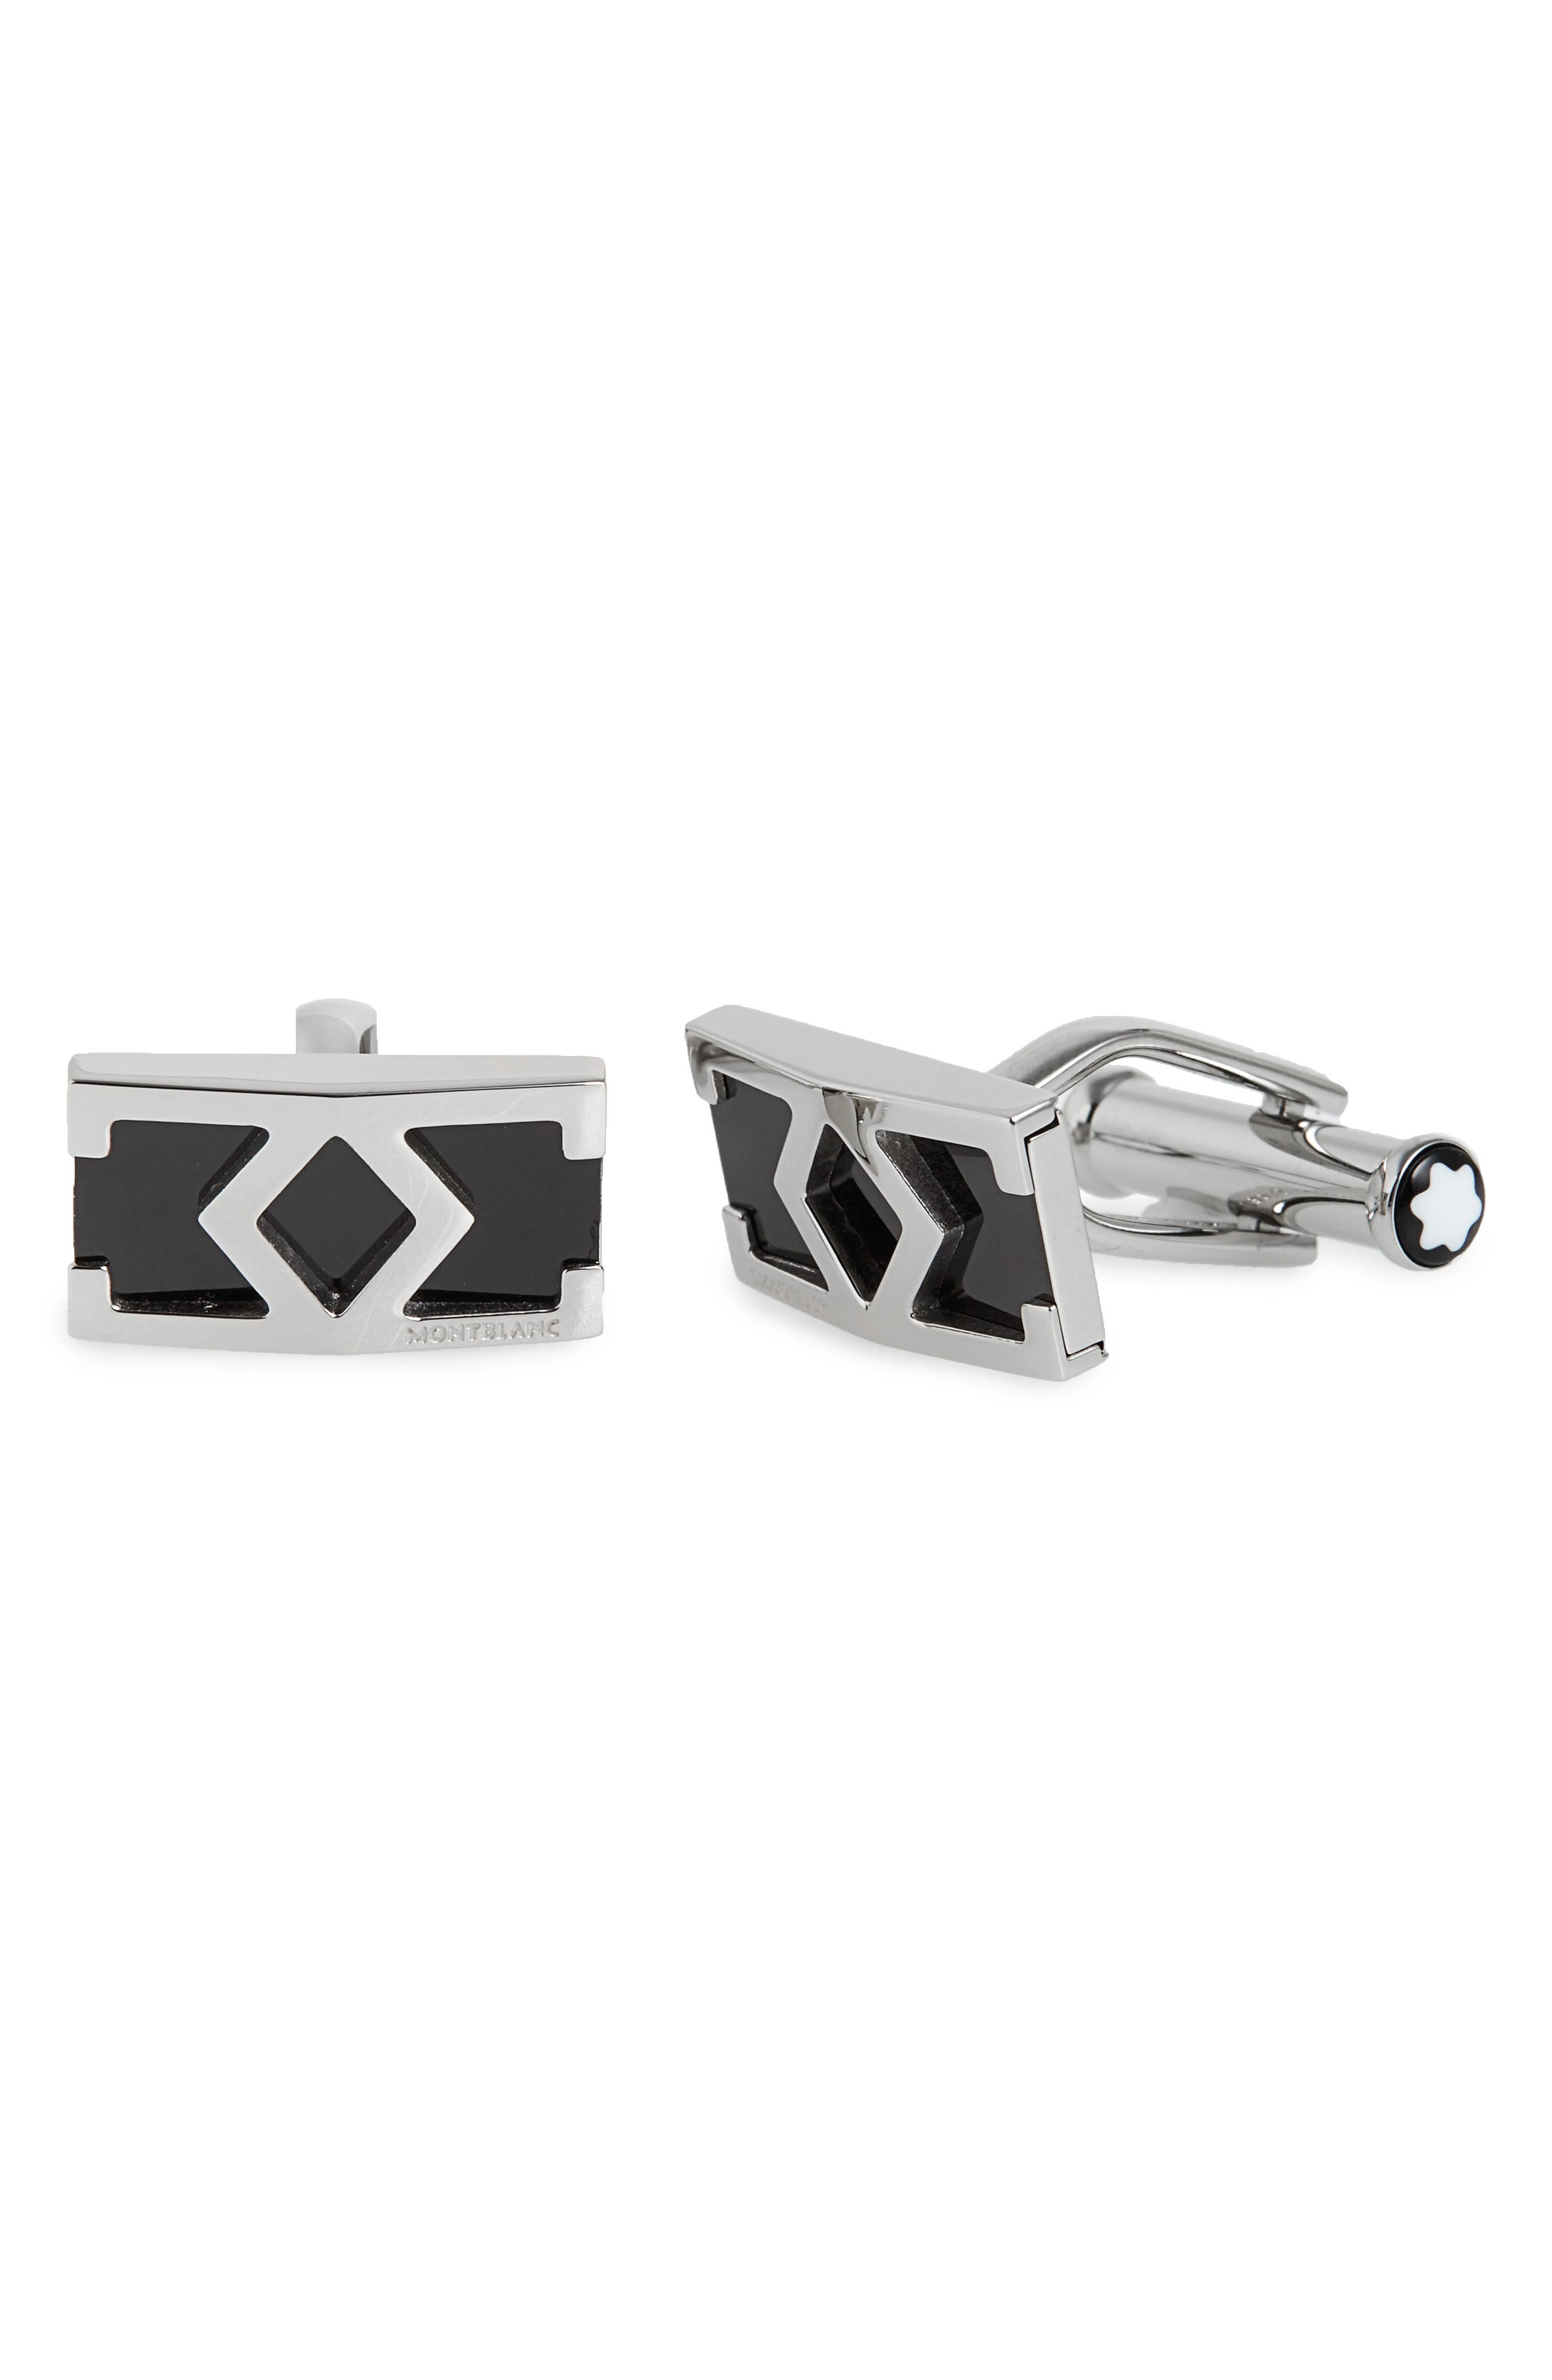 MONTBLANC, M Motif Cuff Links, Main thumbnail 1, color, STAINLESS STEEL